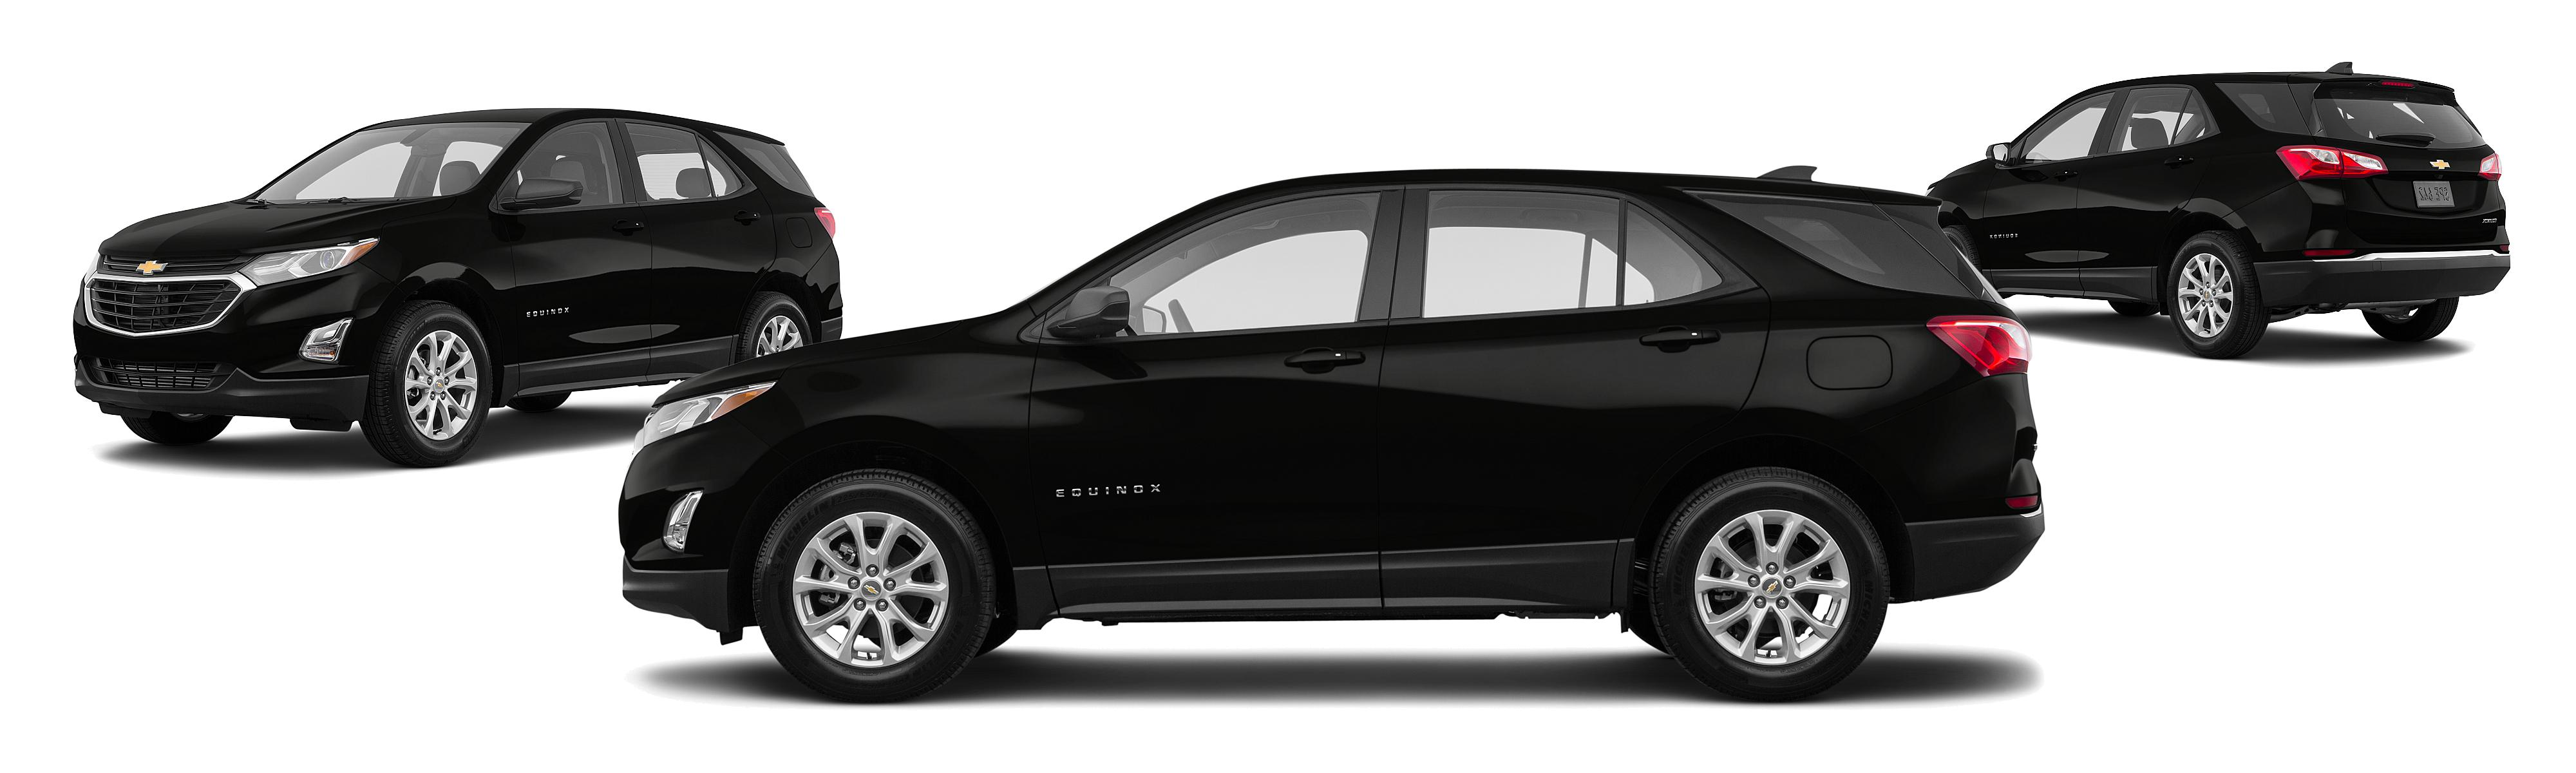 2018 chevrolet equinox black. simple chevrolet with 2018 chevrolet equinox black